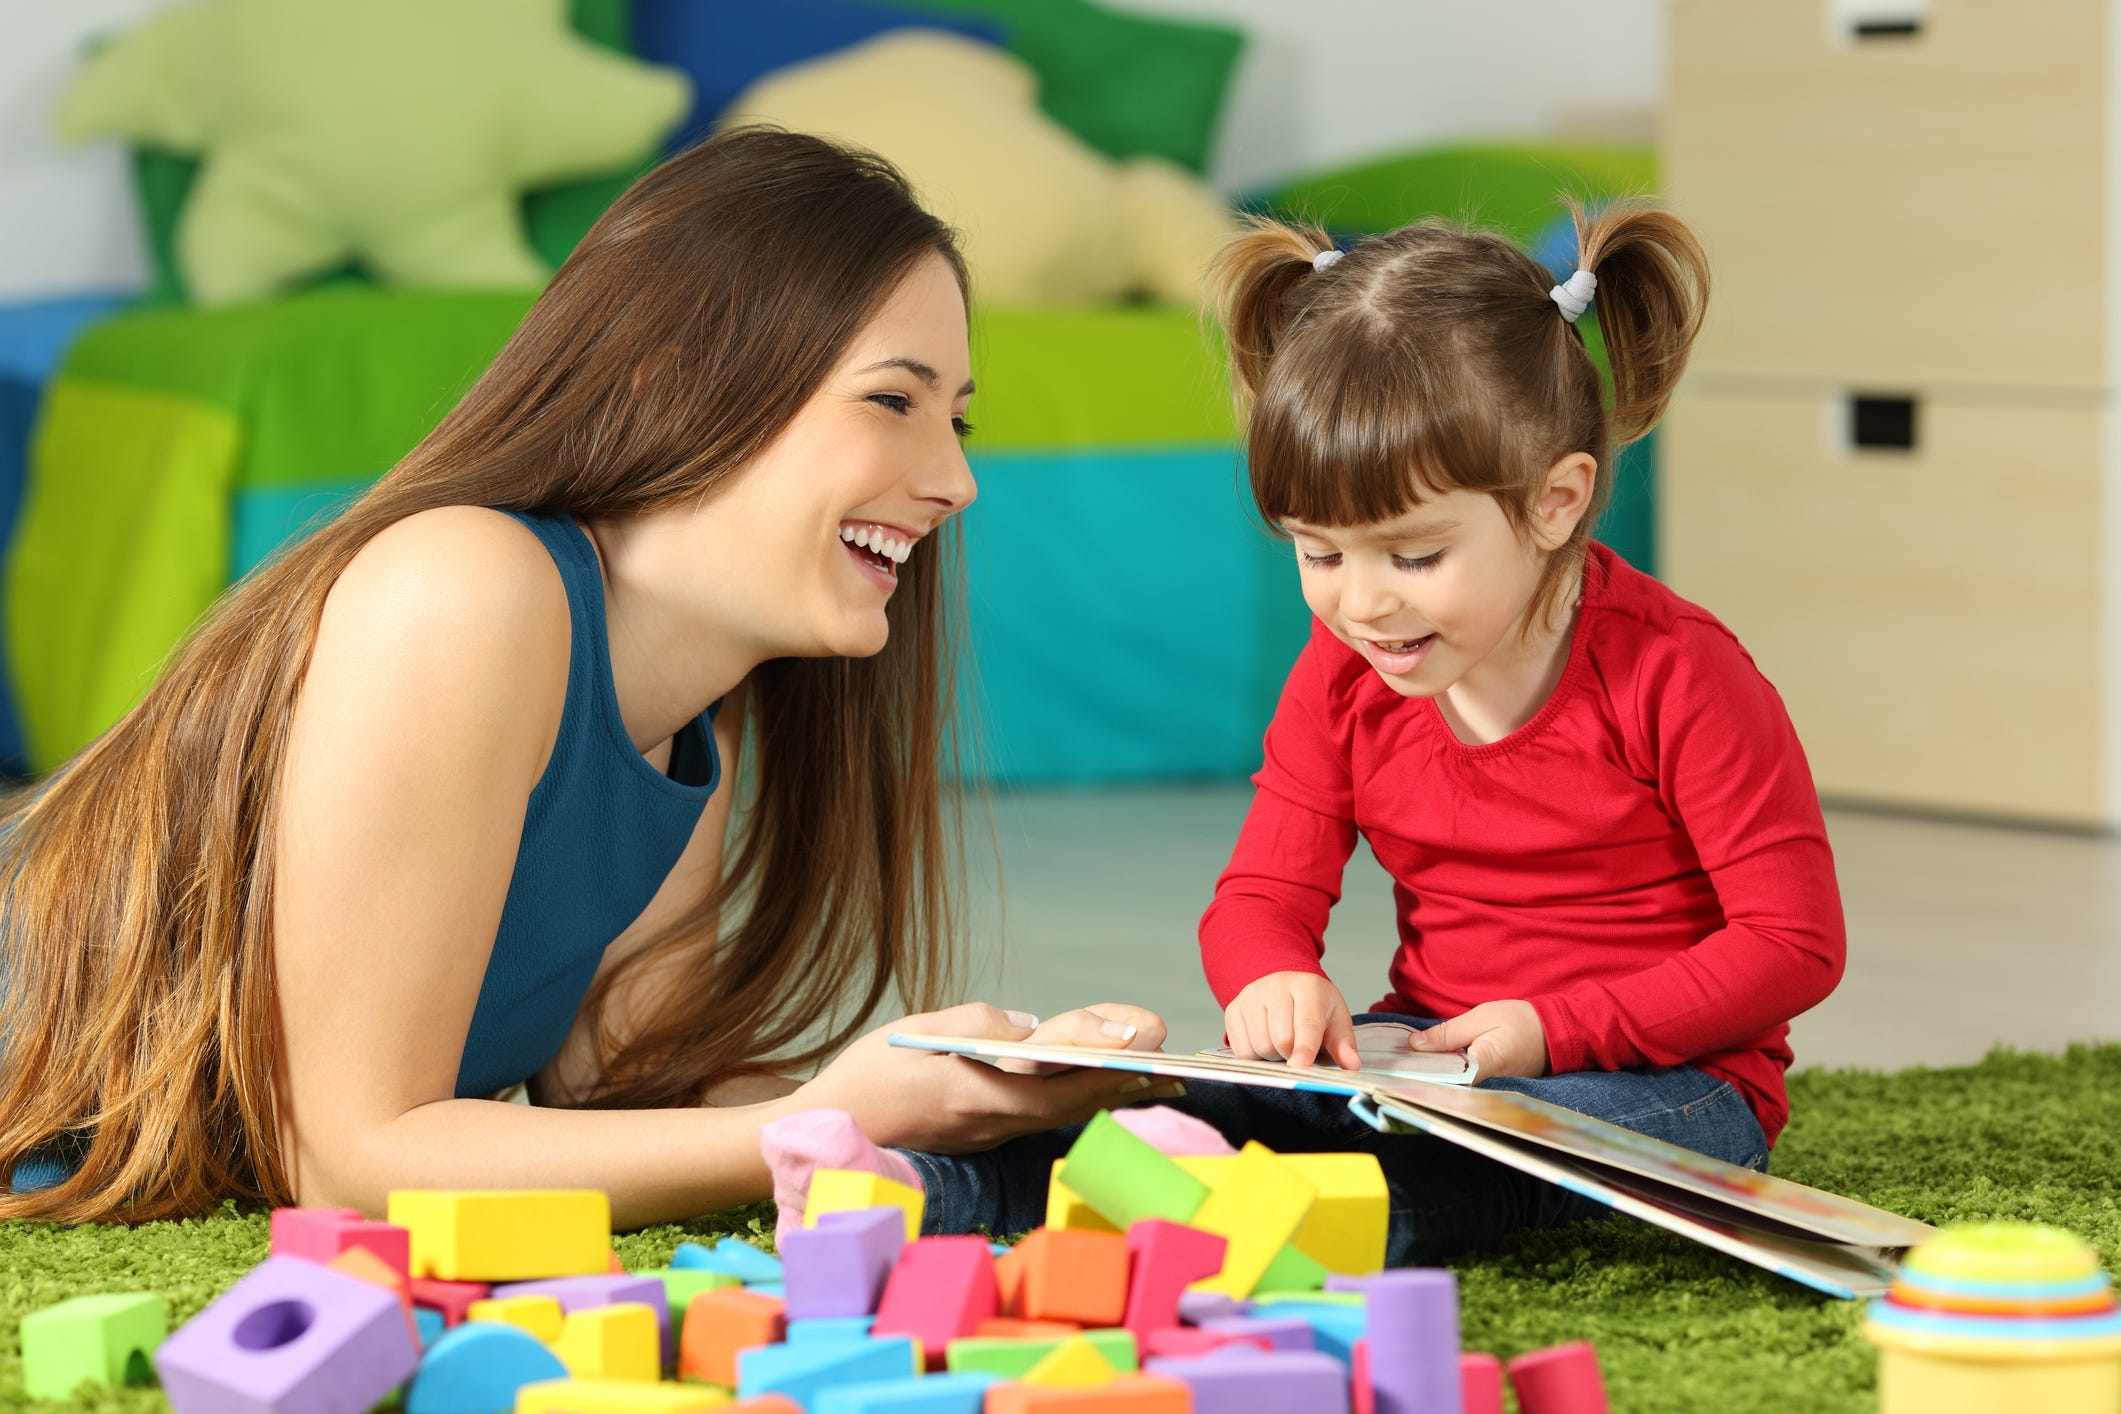 Girl and a woman on a green carpet reading a book with building blocks around them